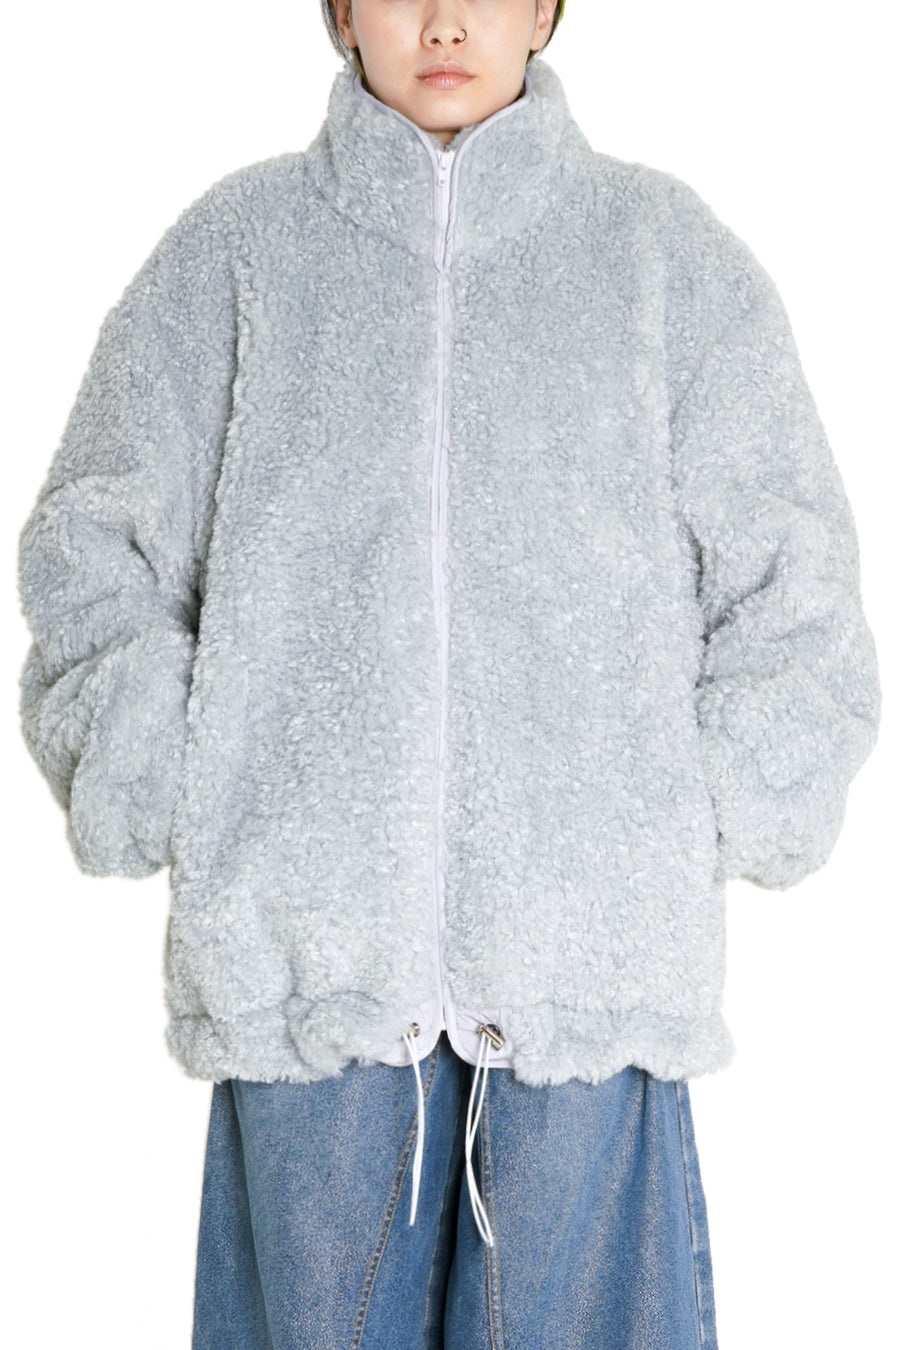 Ash Blue Oversized Faux-Shearling Zip Up Jacket